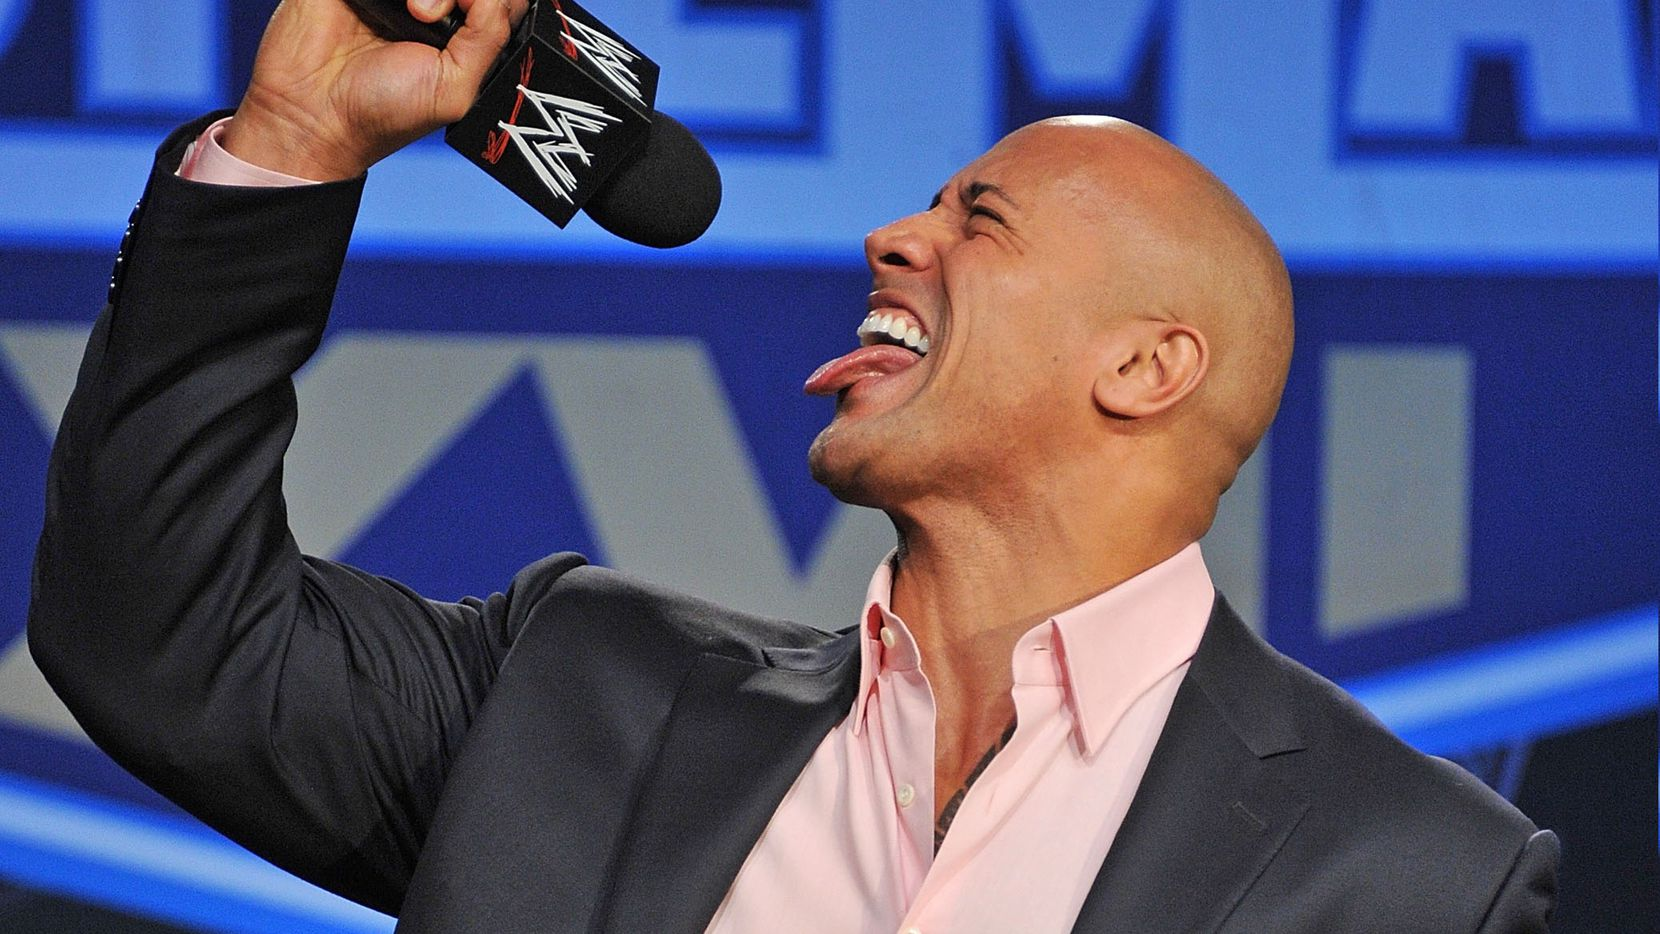 """Dwayne """"The Rock"""" Johnson attends the WrestleMania XXVII press conference at Hard Rock Cafe New York on March 30, 2011 in New York City."""